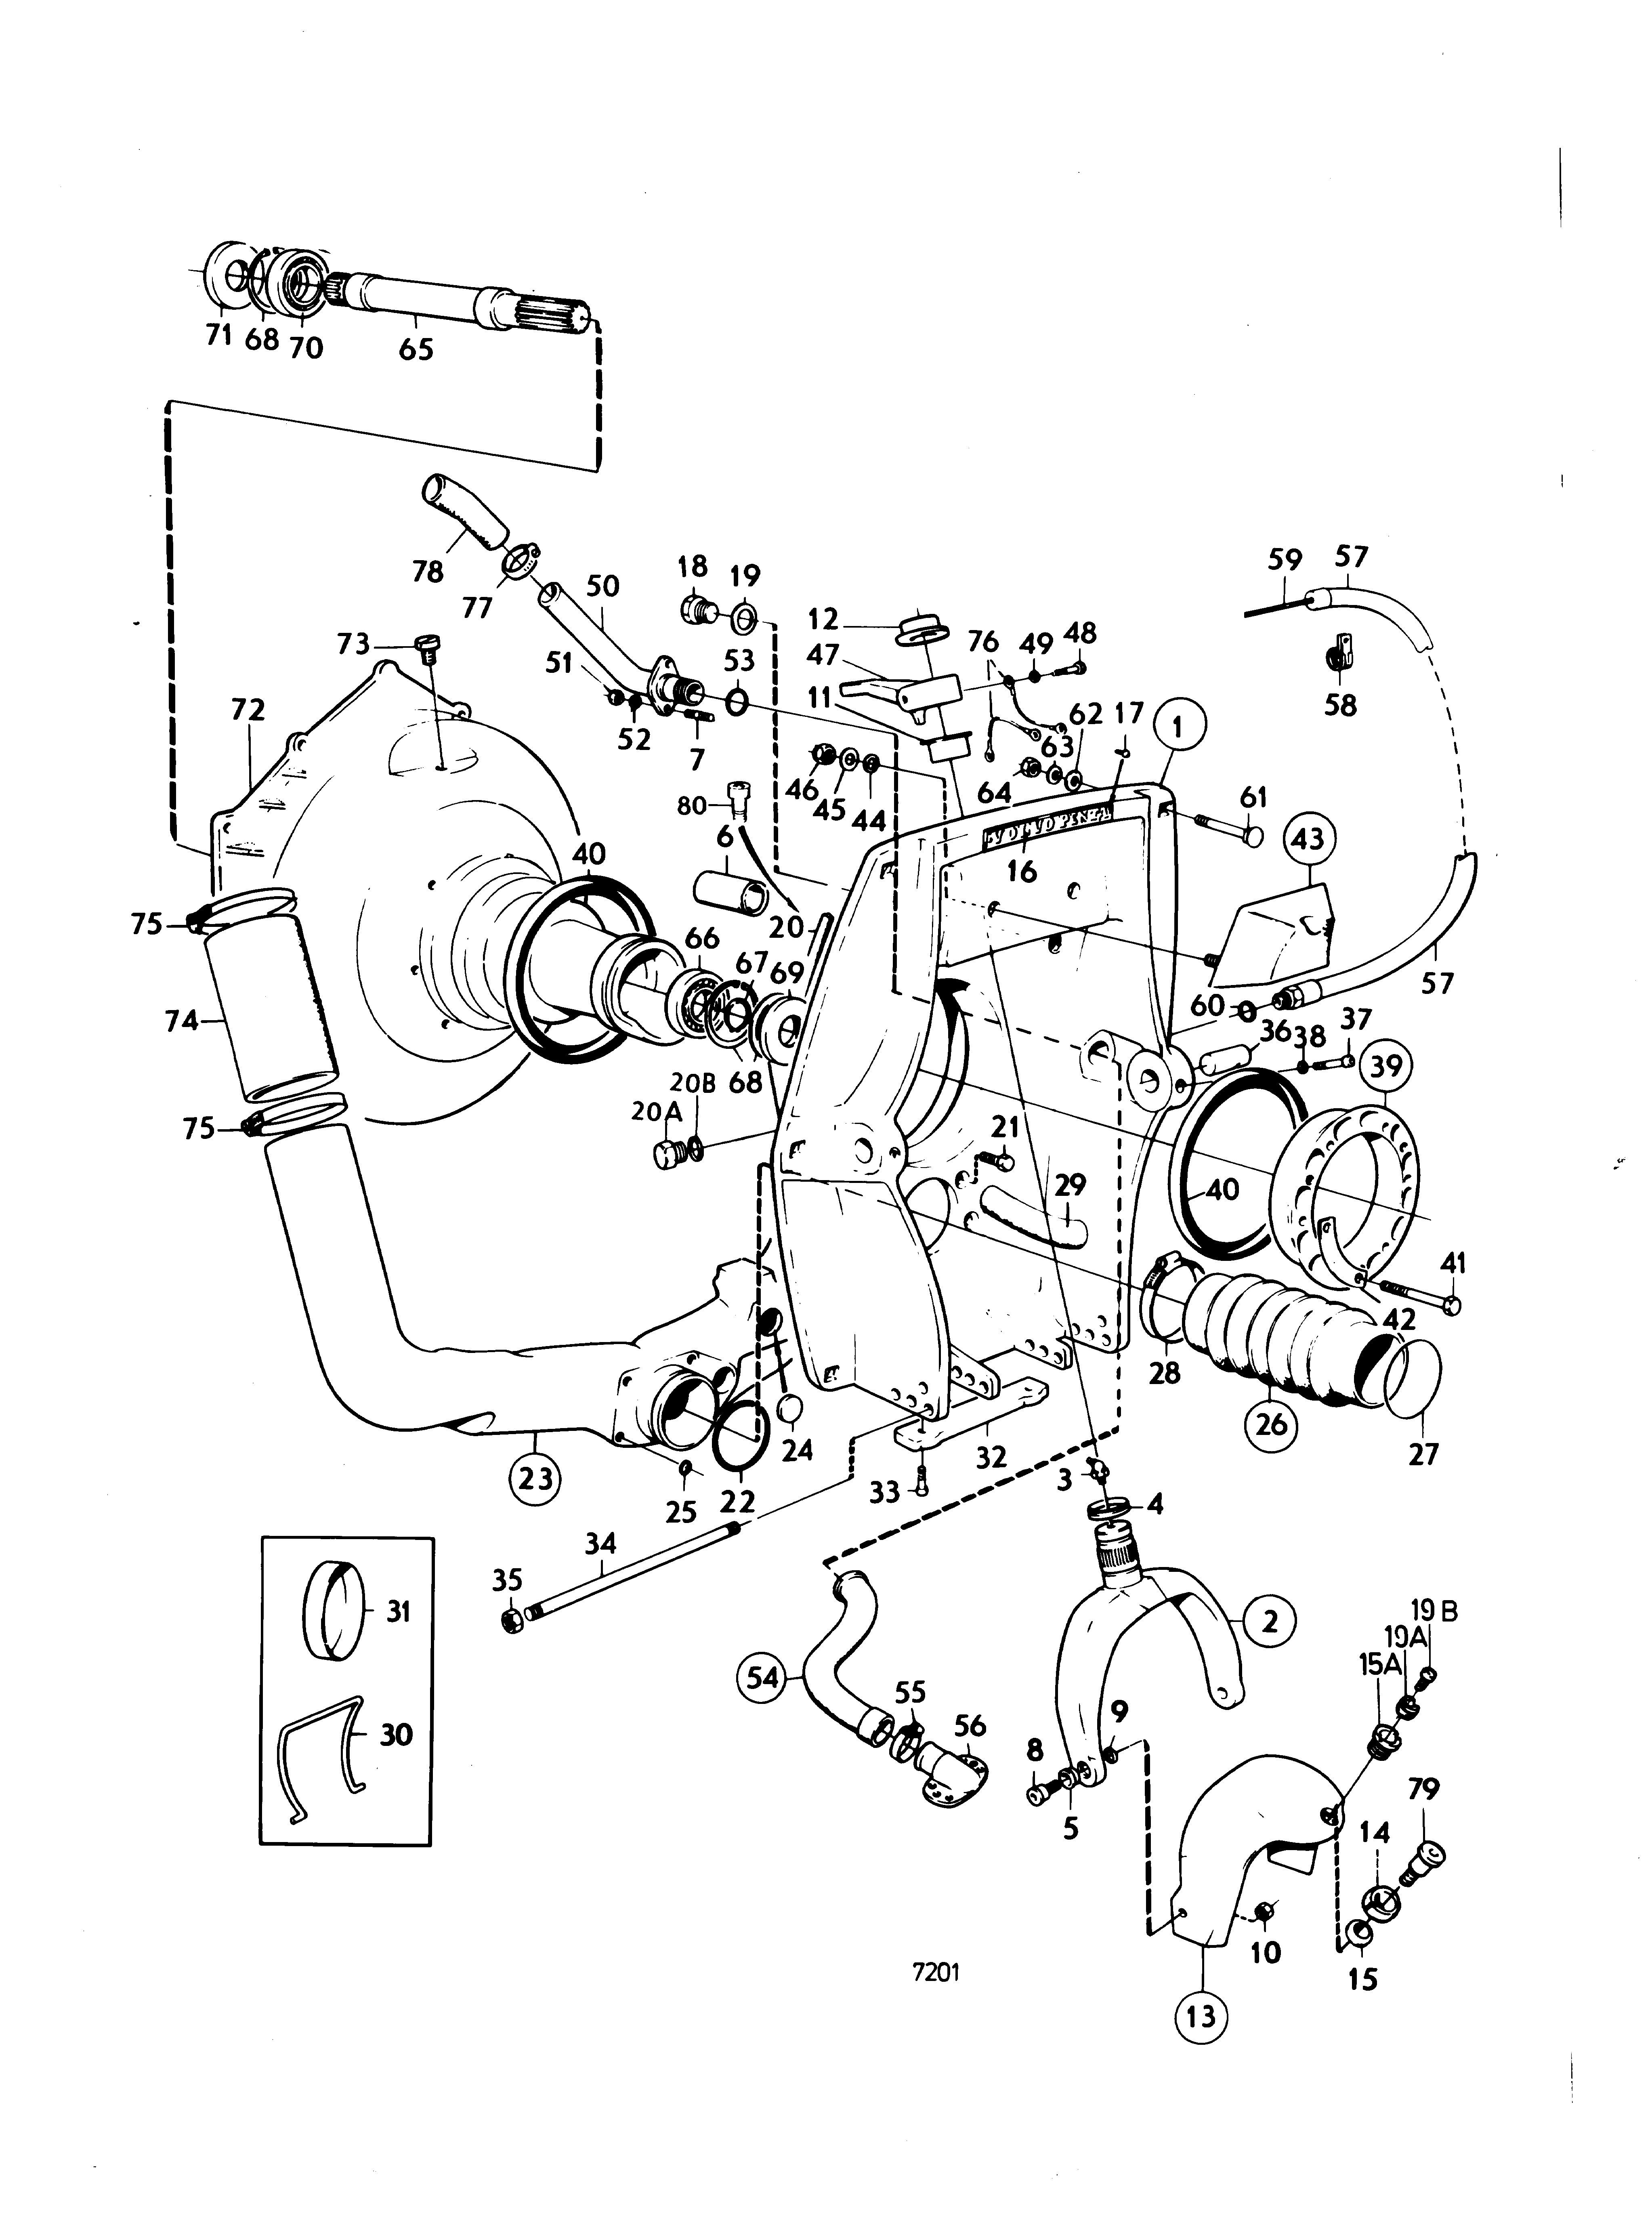 Gm Parts Diagrams Exploded Views Car Chevrolet Exploded View Diagram